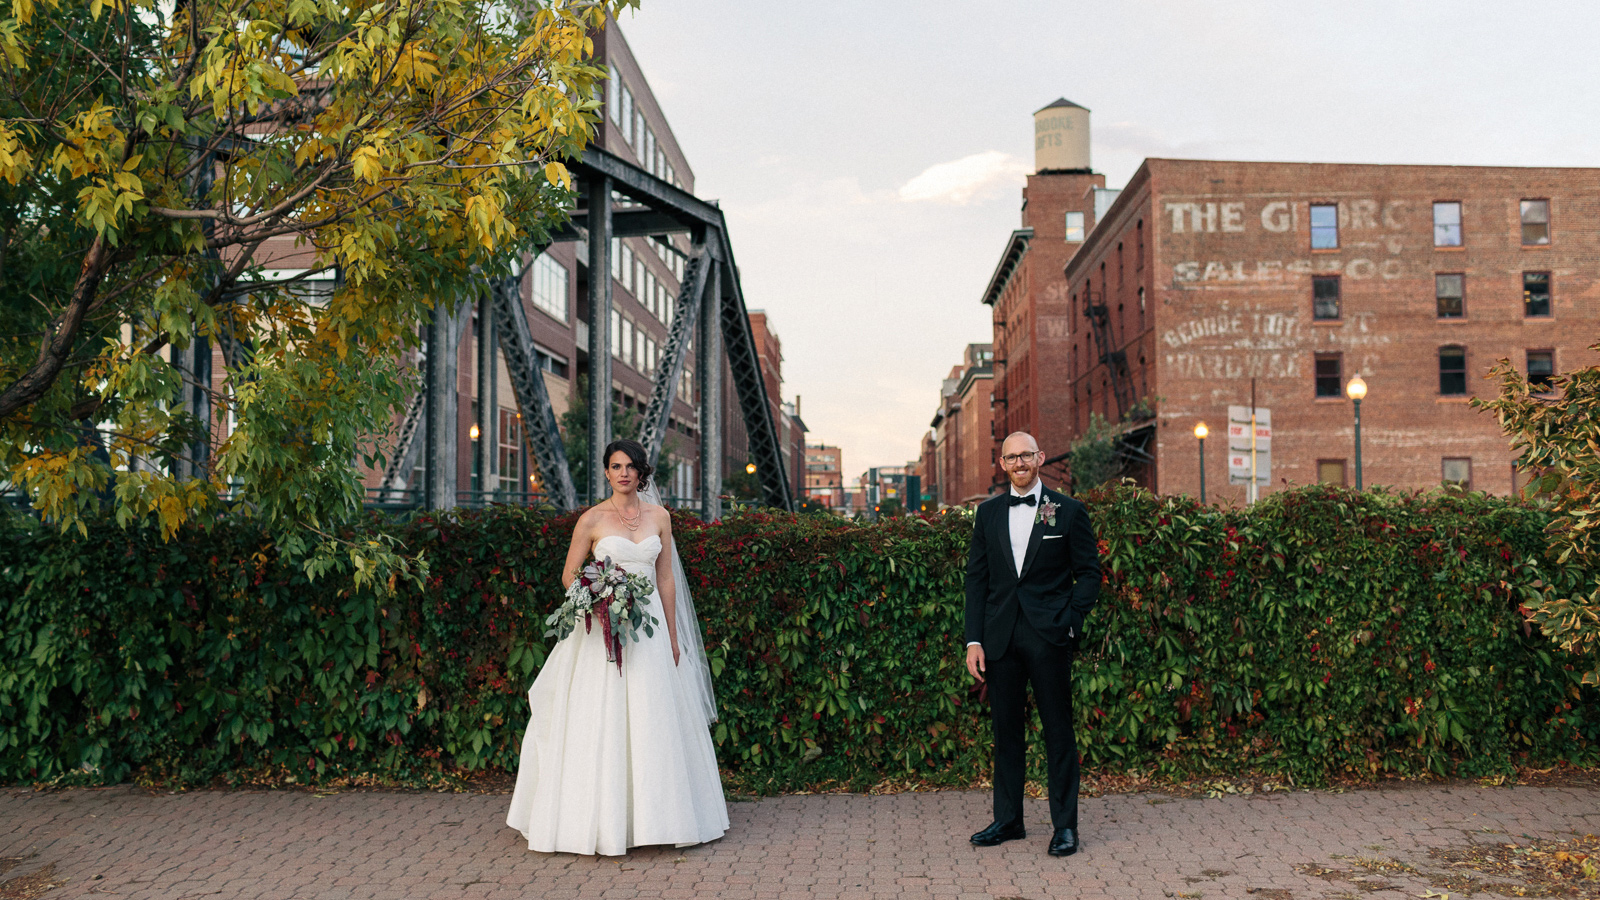 Coo-Hills-Wedding-Photographer-Downtown-Denver-Rebecc-and-Aaron-38.jpg